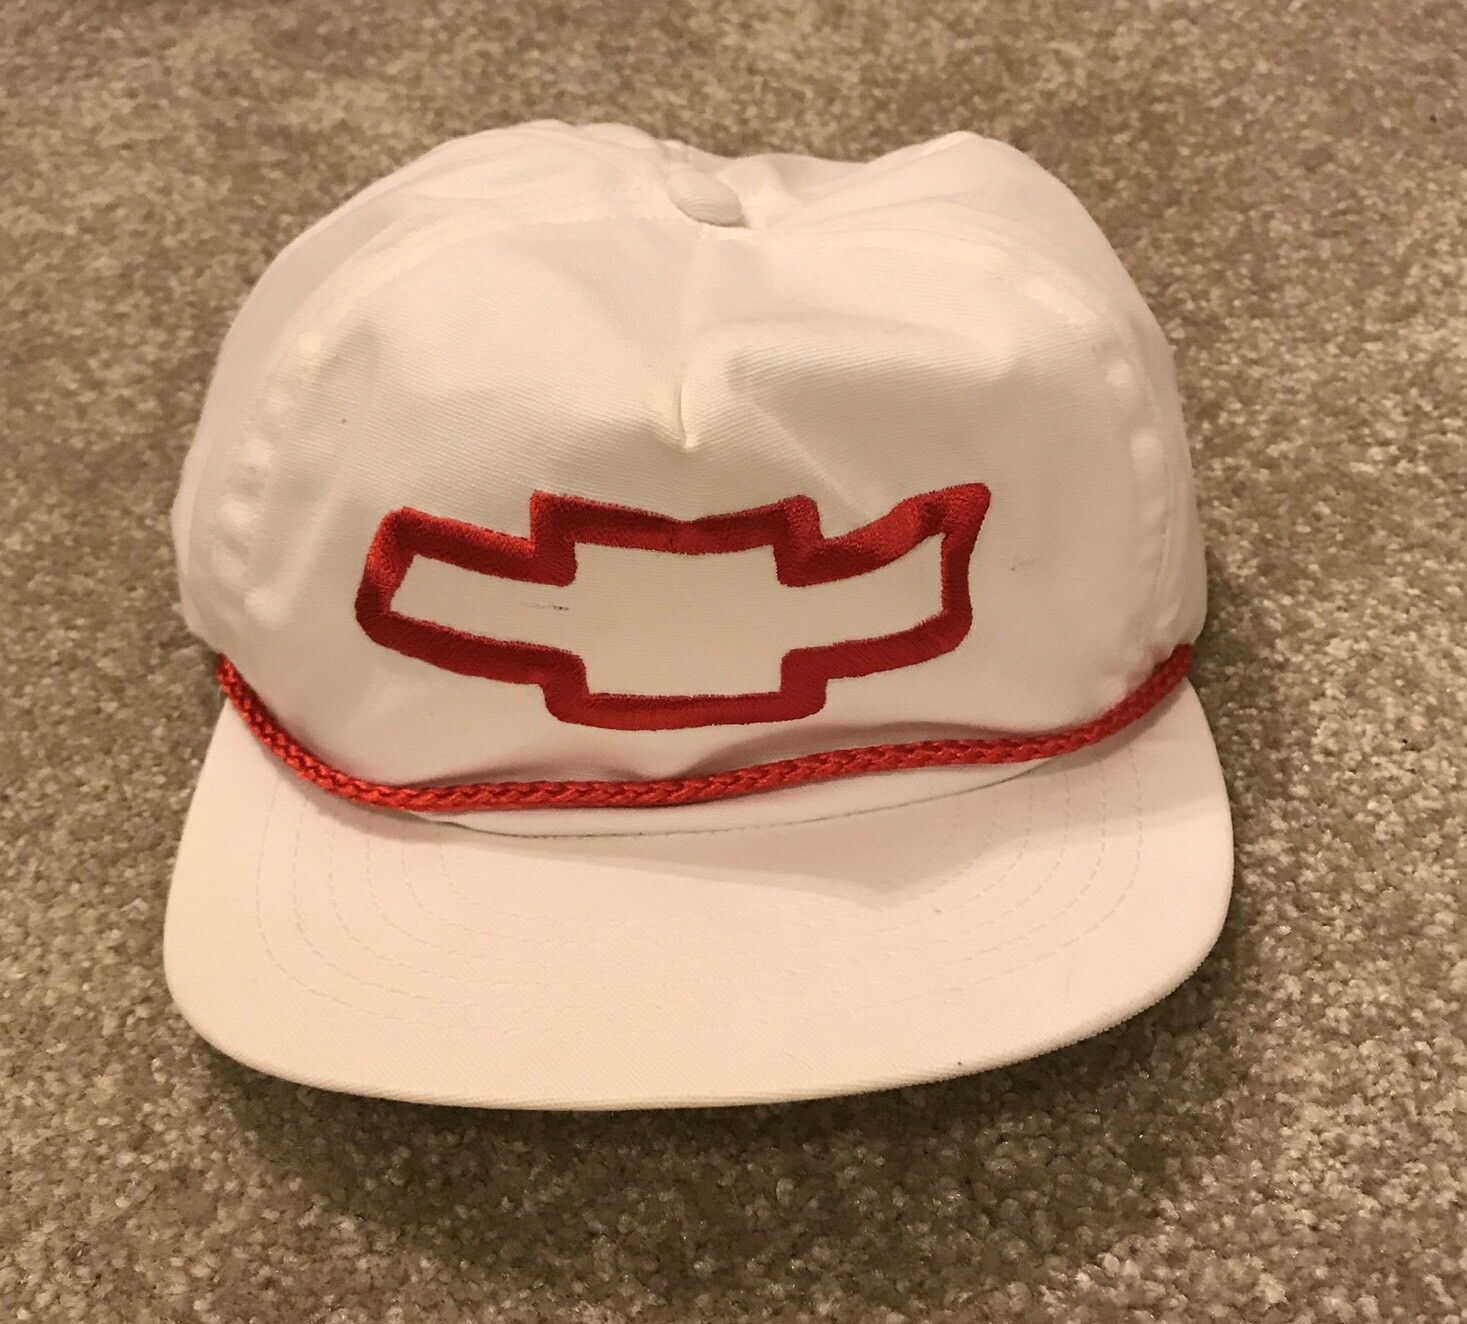 cf81ea7fa Vintage Red CHEVROLET HAT CAP Baseball Trucker White & Red Vintage  Embroidered Bow Tie Slide d47876